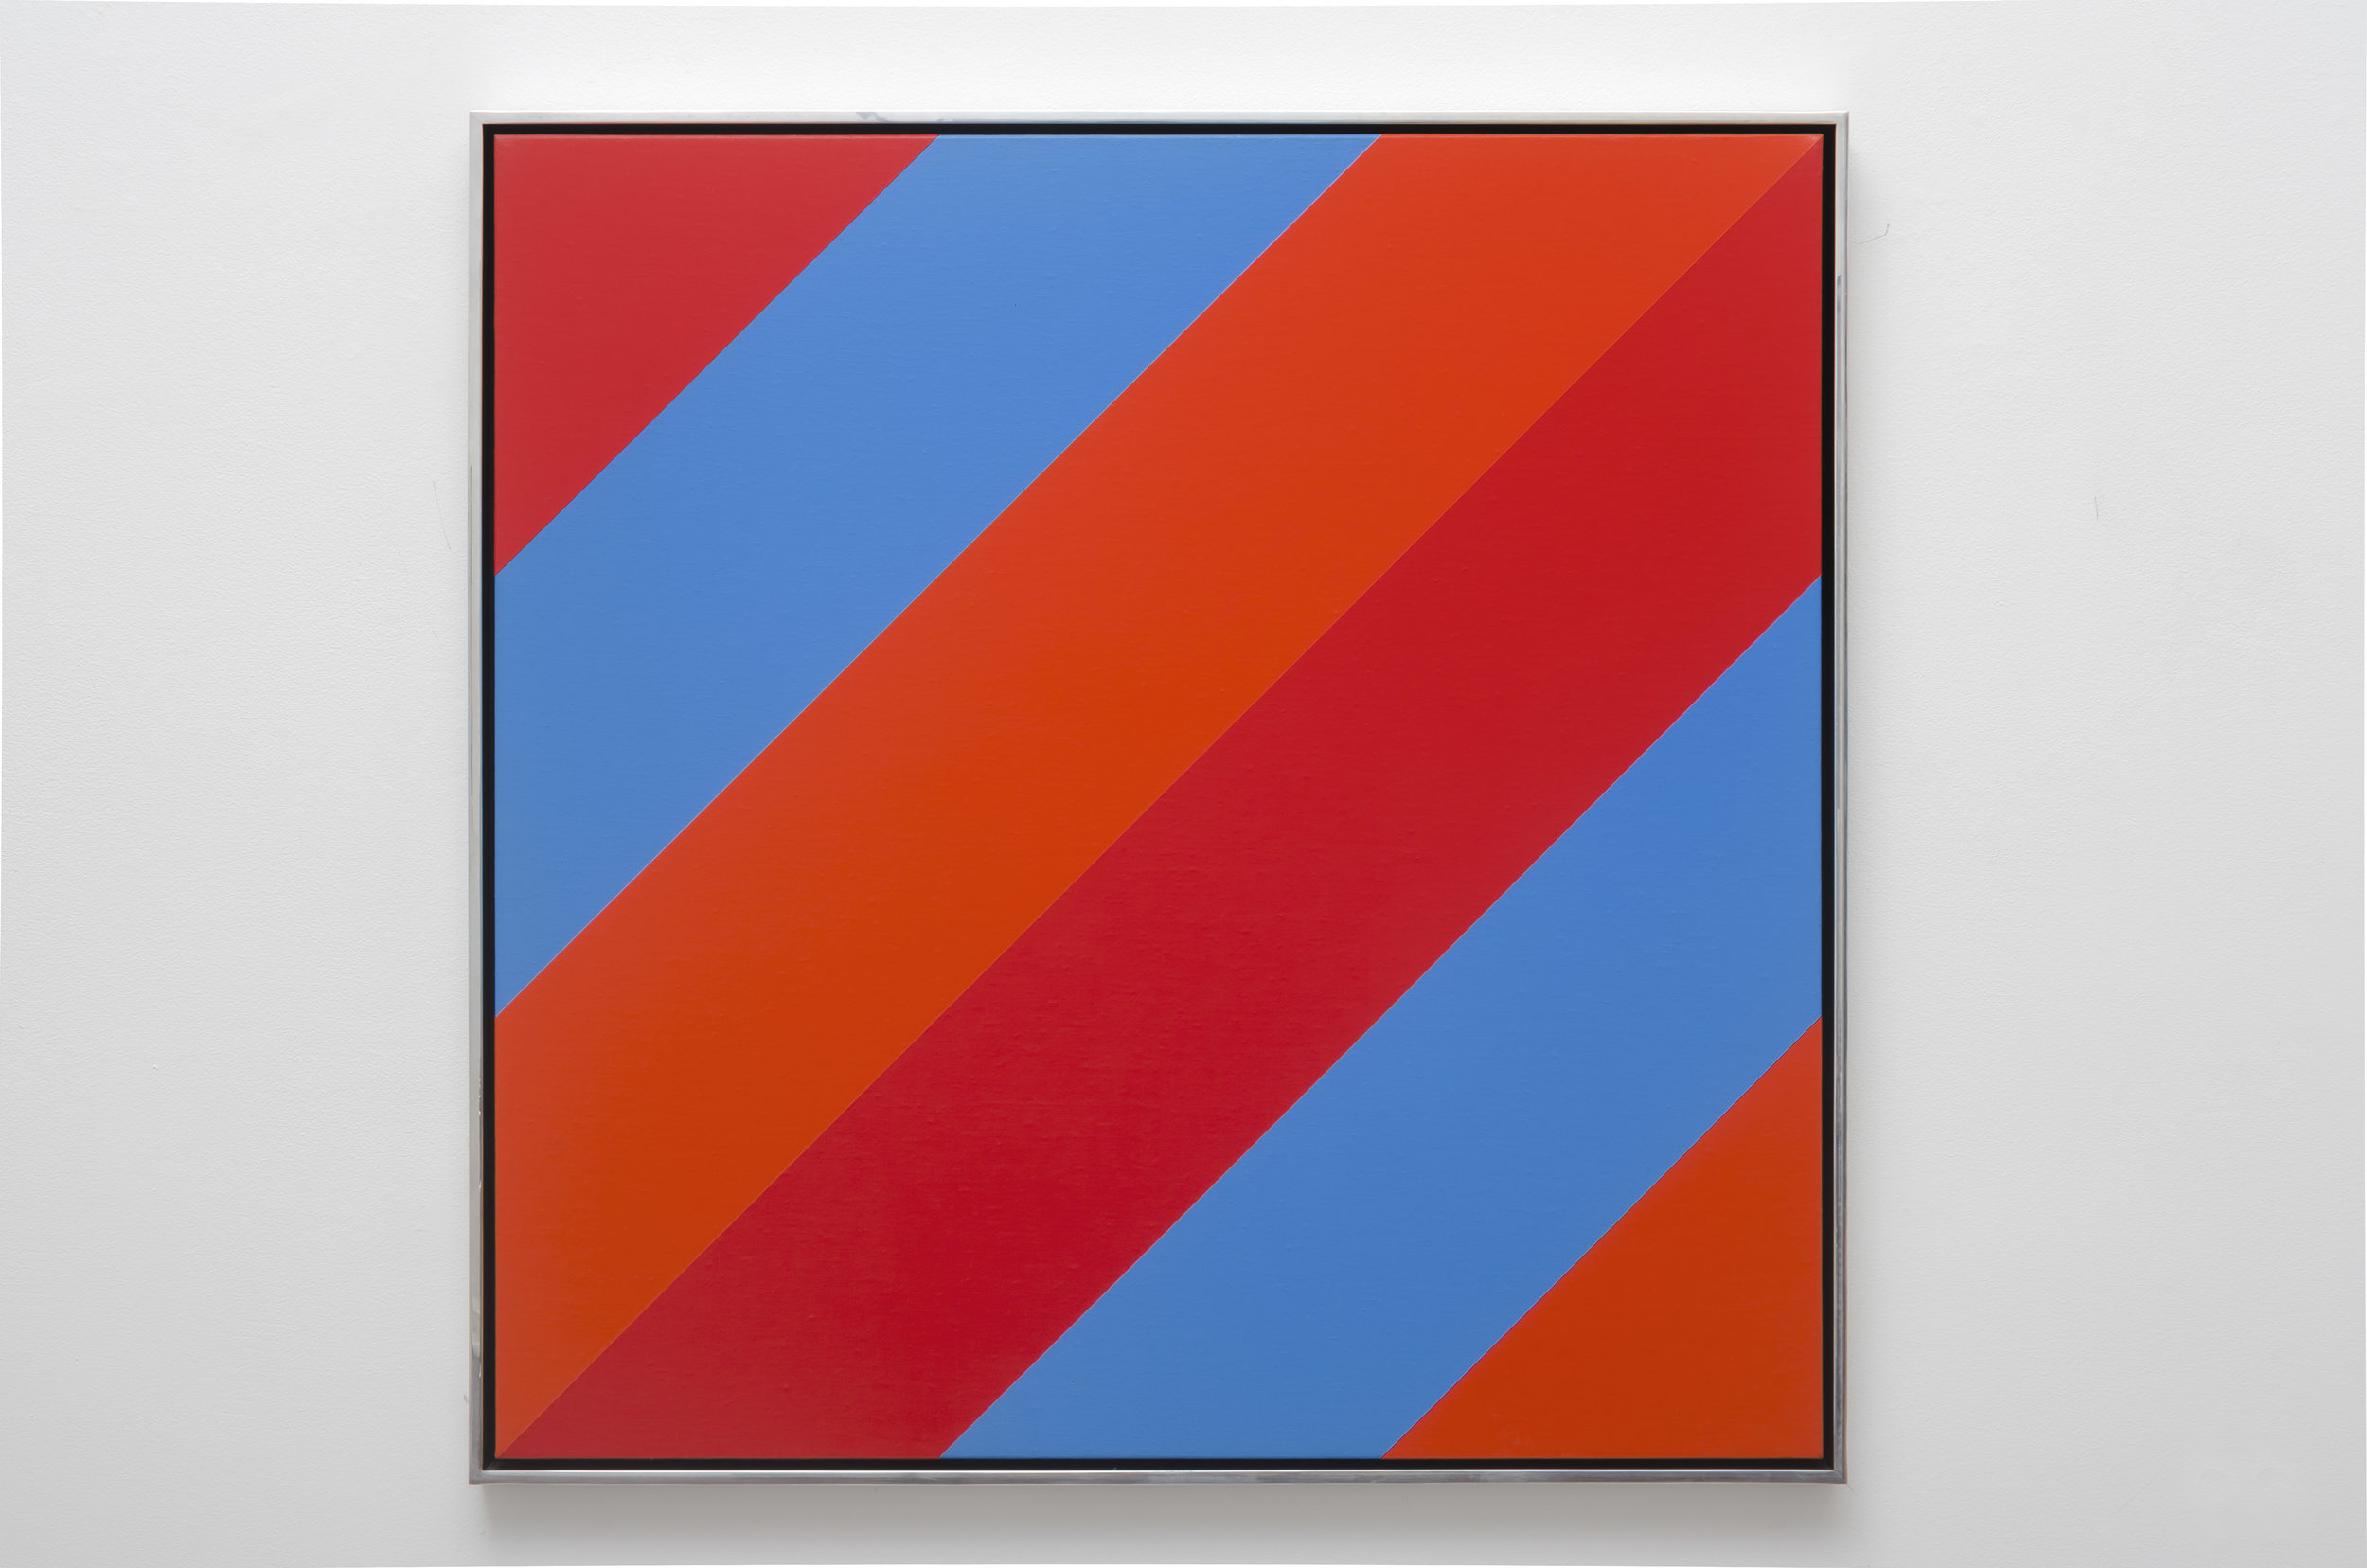 #10 , 1975  oil on canvas 36 x 36 inches; 91.4 x 91.4 centimeters